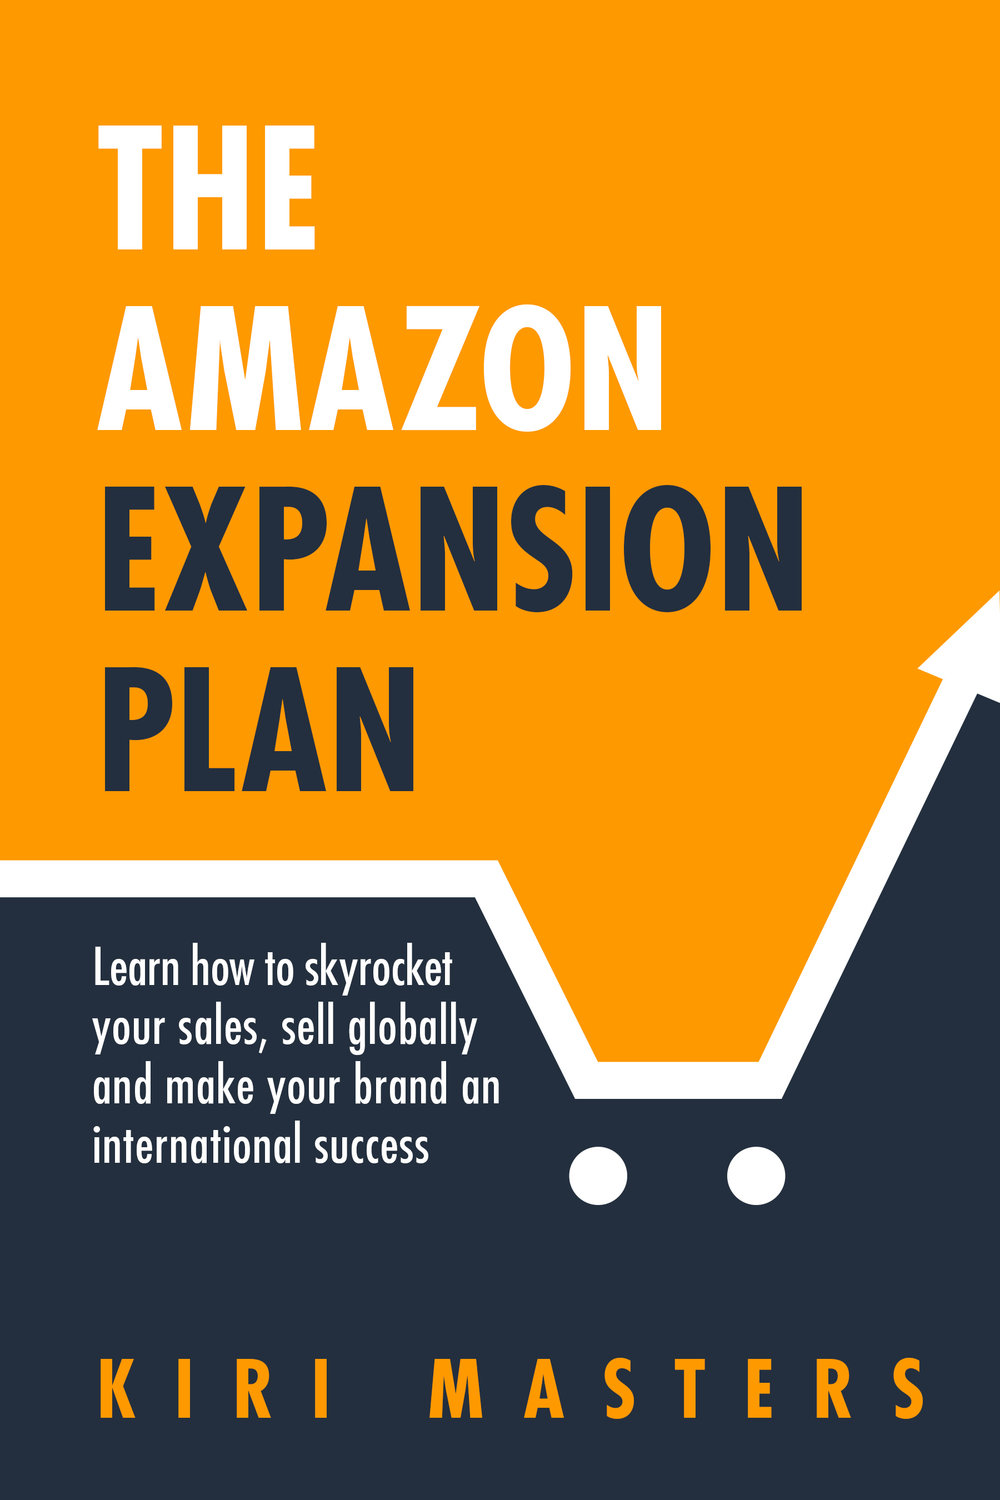 The Amazon Expansion Plan by Kiri Masters